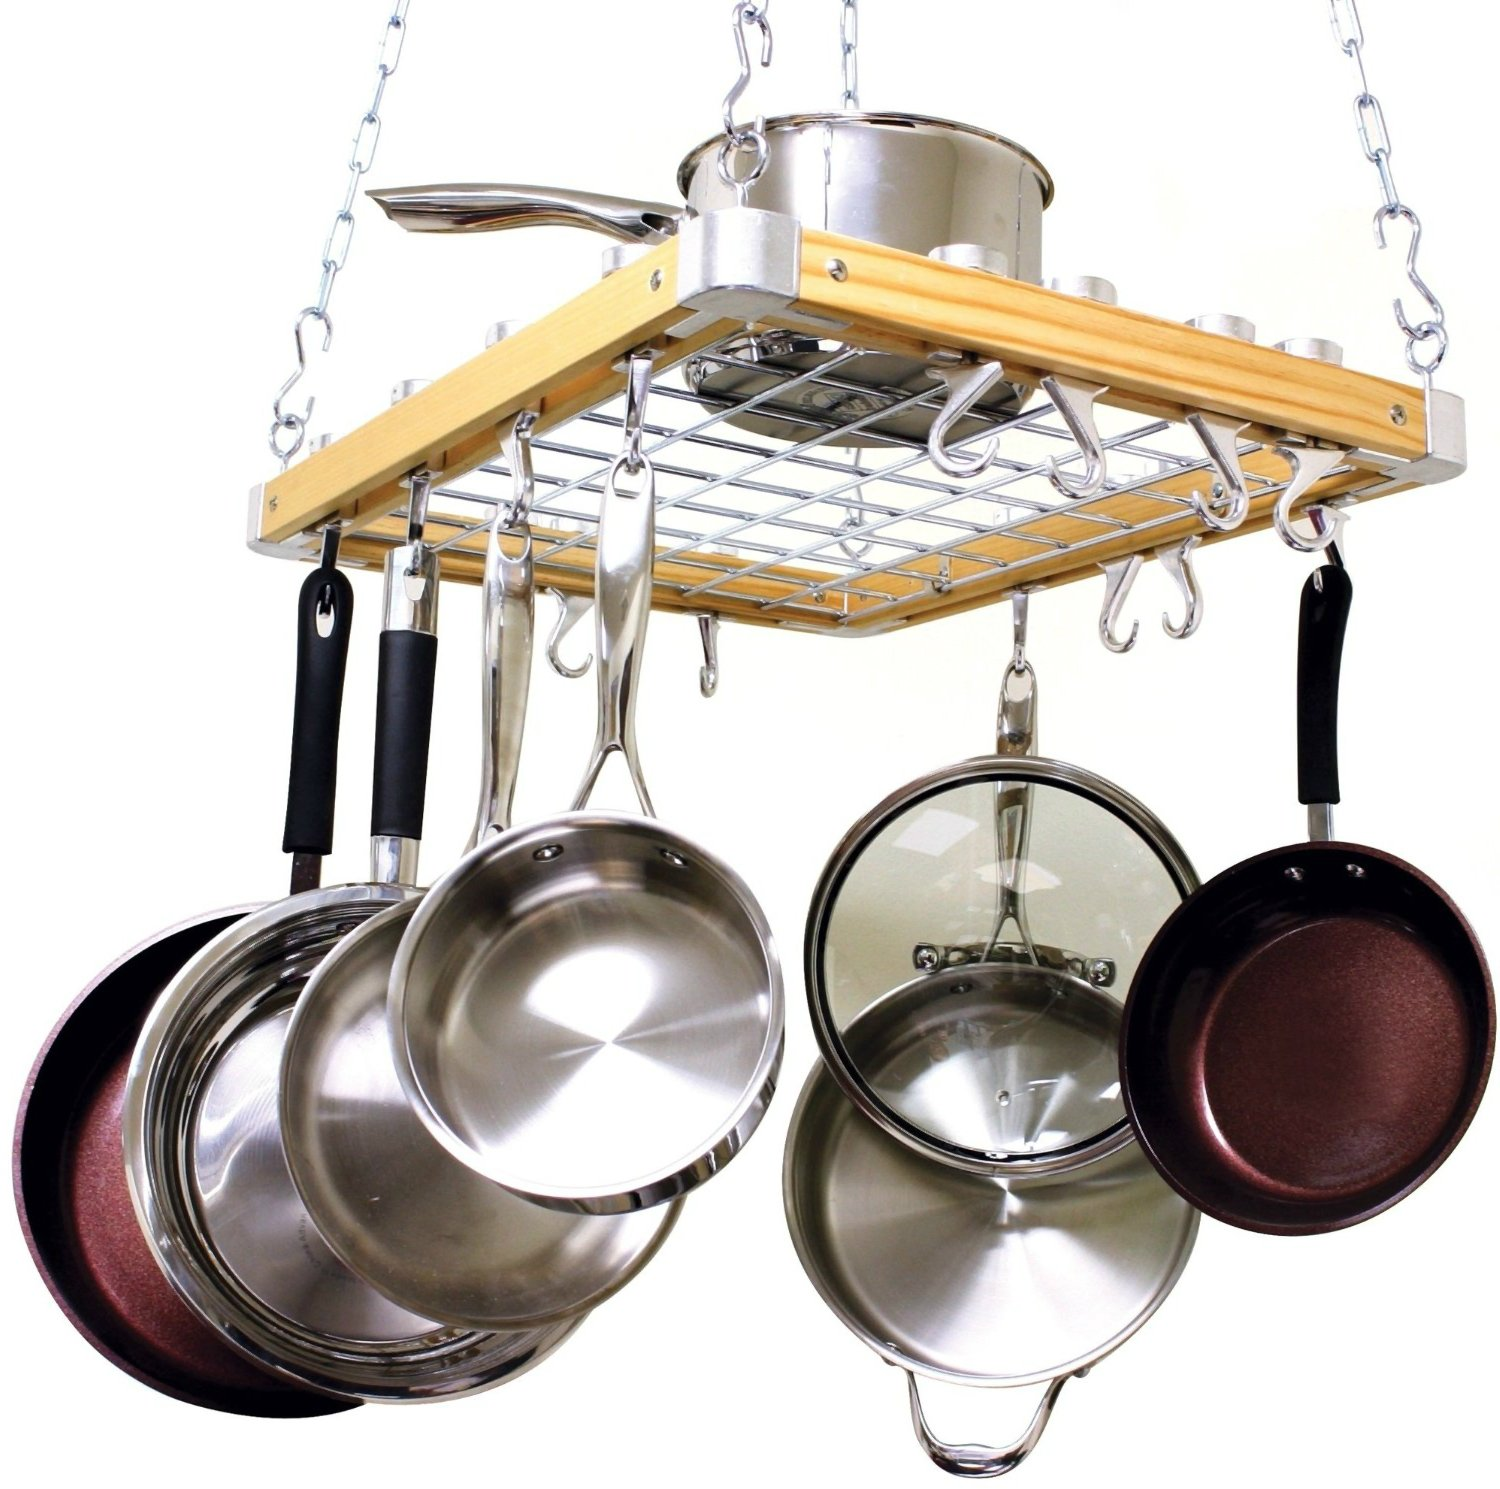 Amazon com hanging pot pan rack kitchen ceiling cookware set holder storage skillet frying hooks hangers kitchen dining